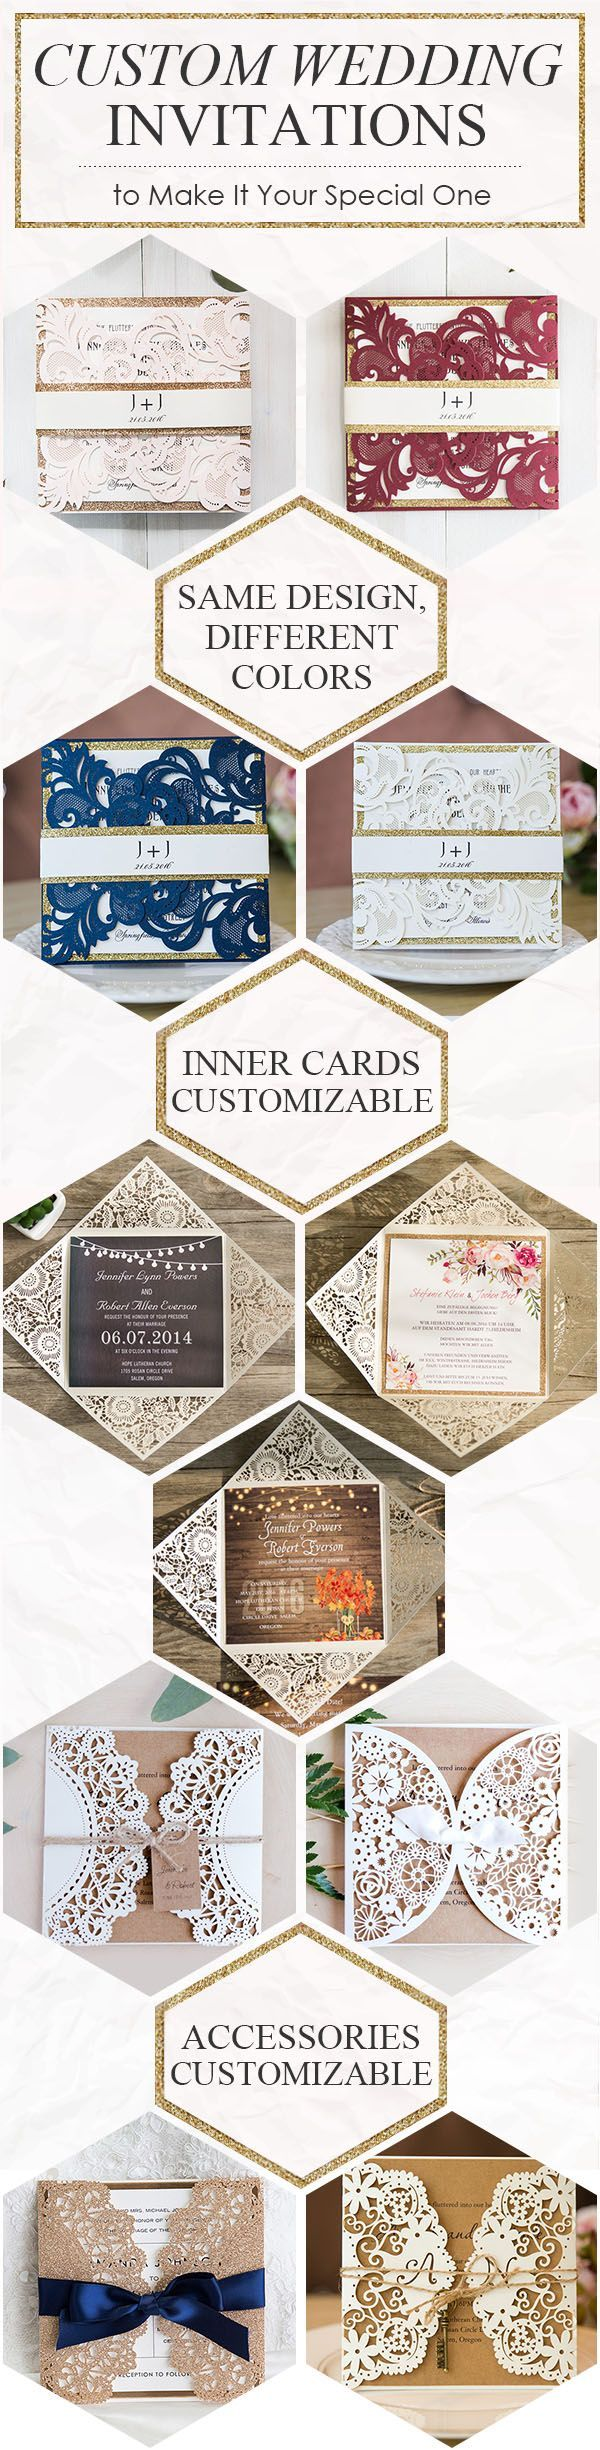 make your own wedding invitations online free%0A Custom wedding invitations for      from Elegant Wedding Invites  weddinginvitations ElegantWeddingInvites